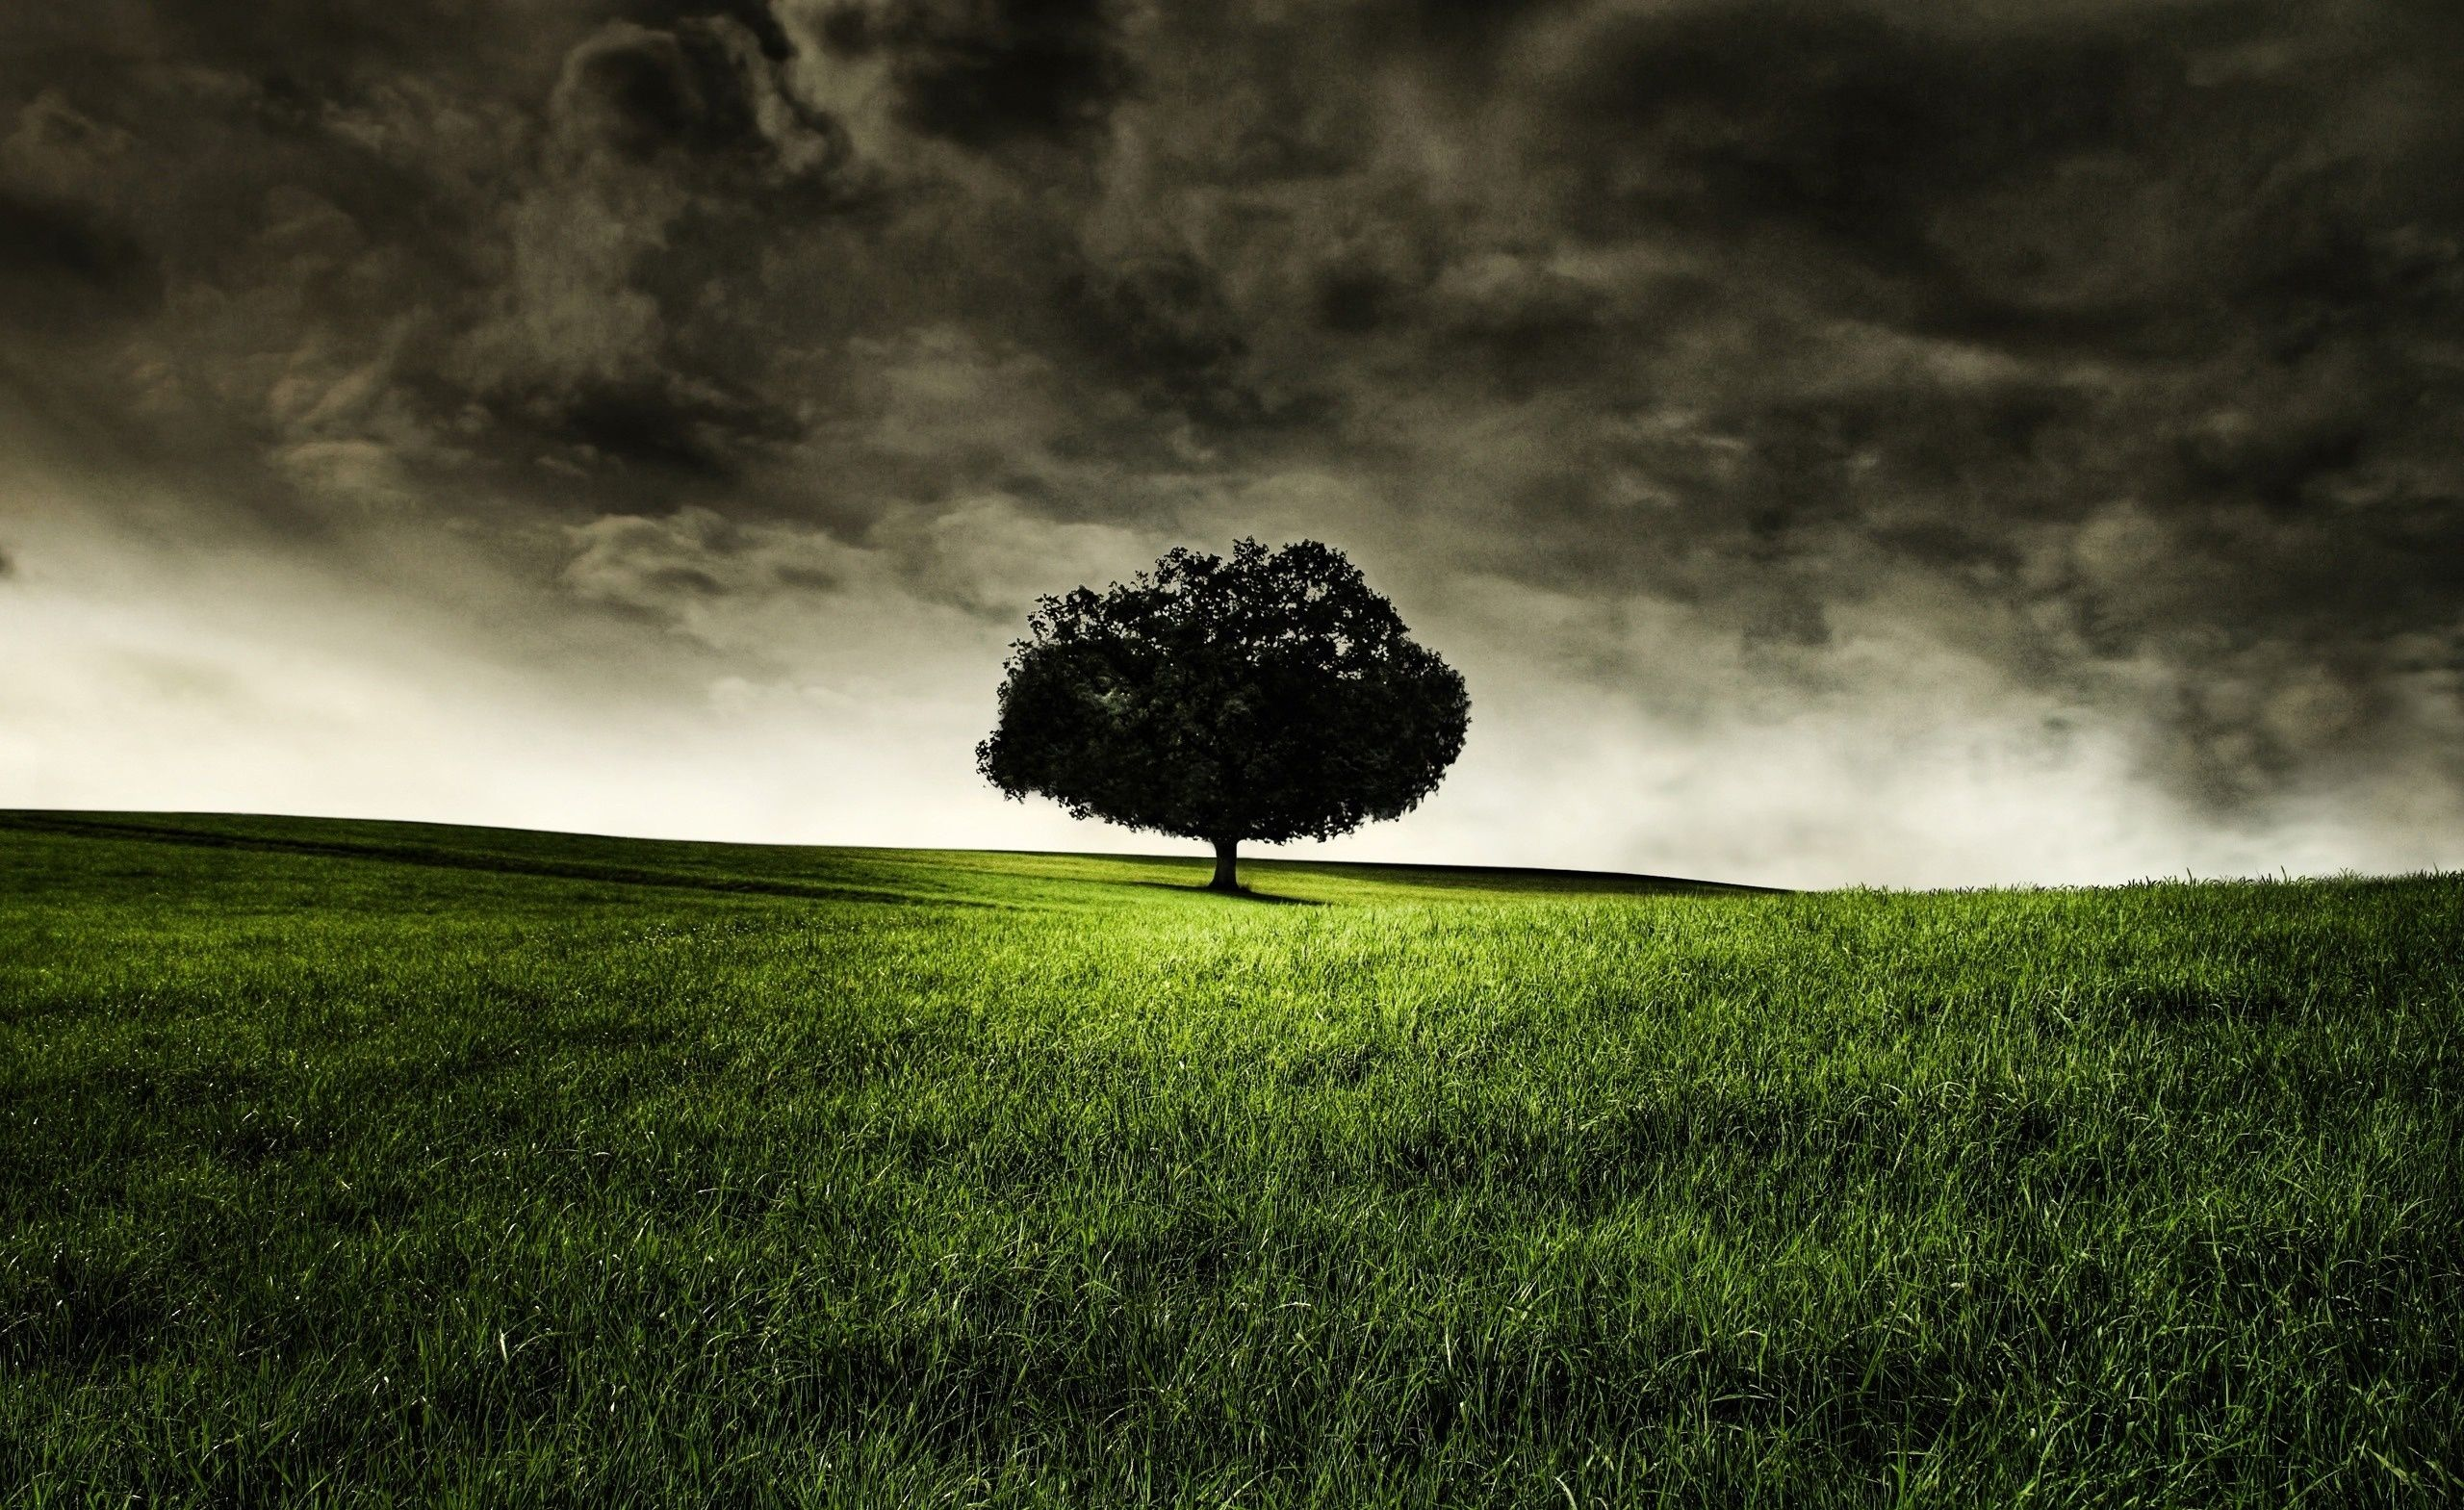 Hd dark nature backgrounds